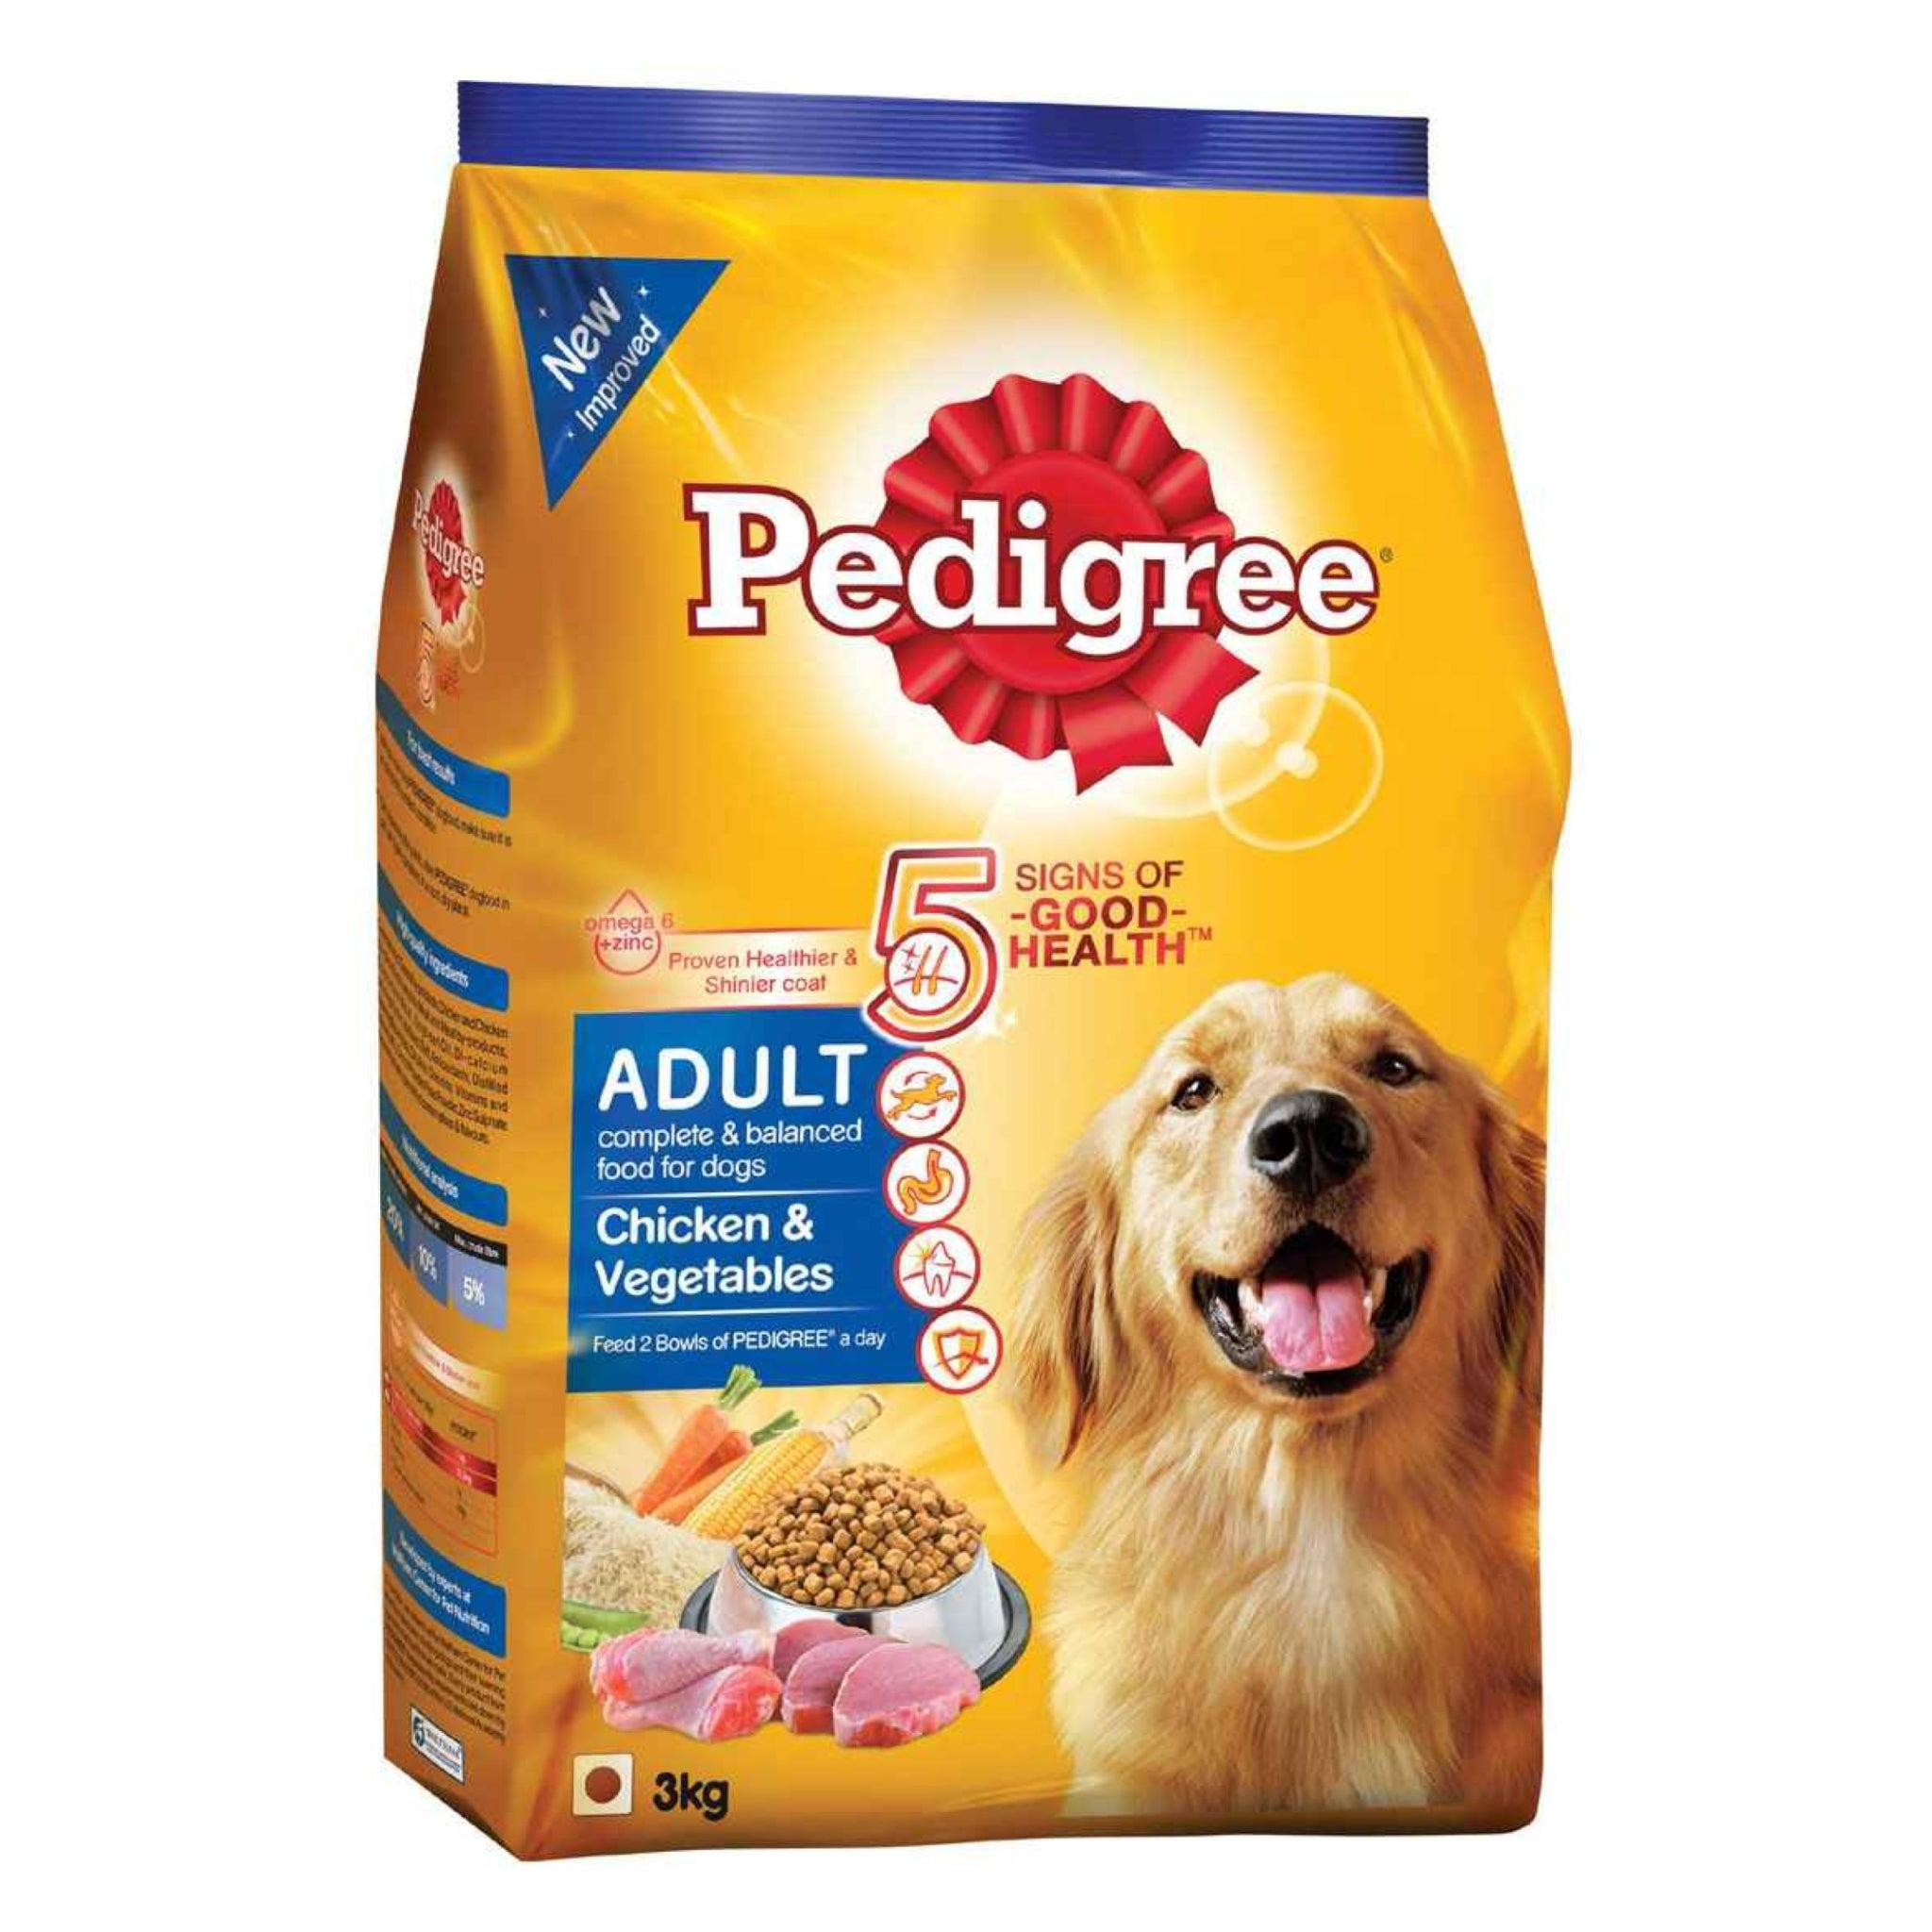 Pedigree Chicken And Vegetable Adult Dog Food - Poochles